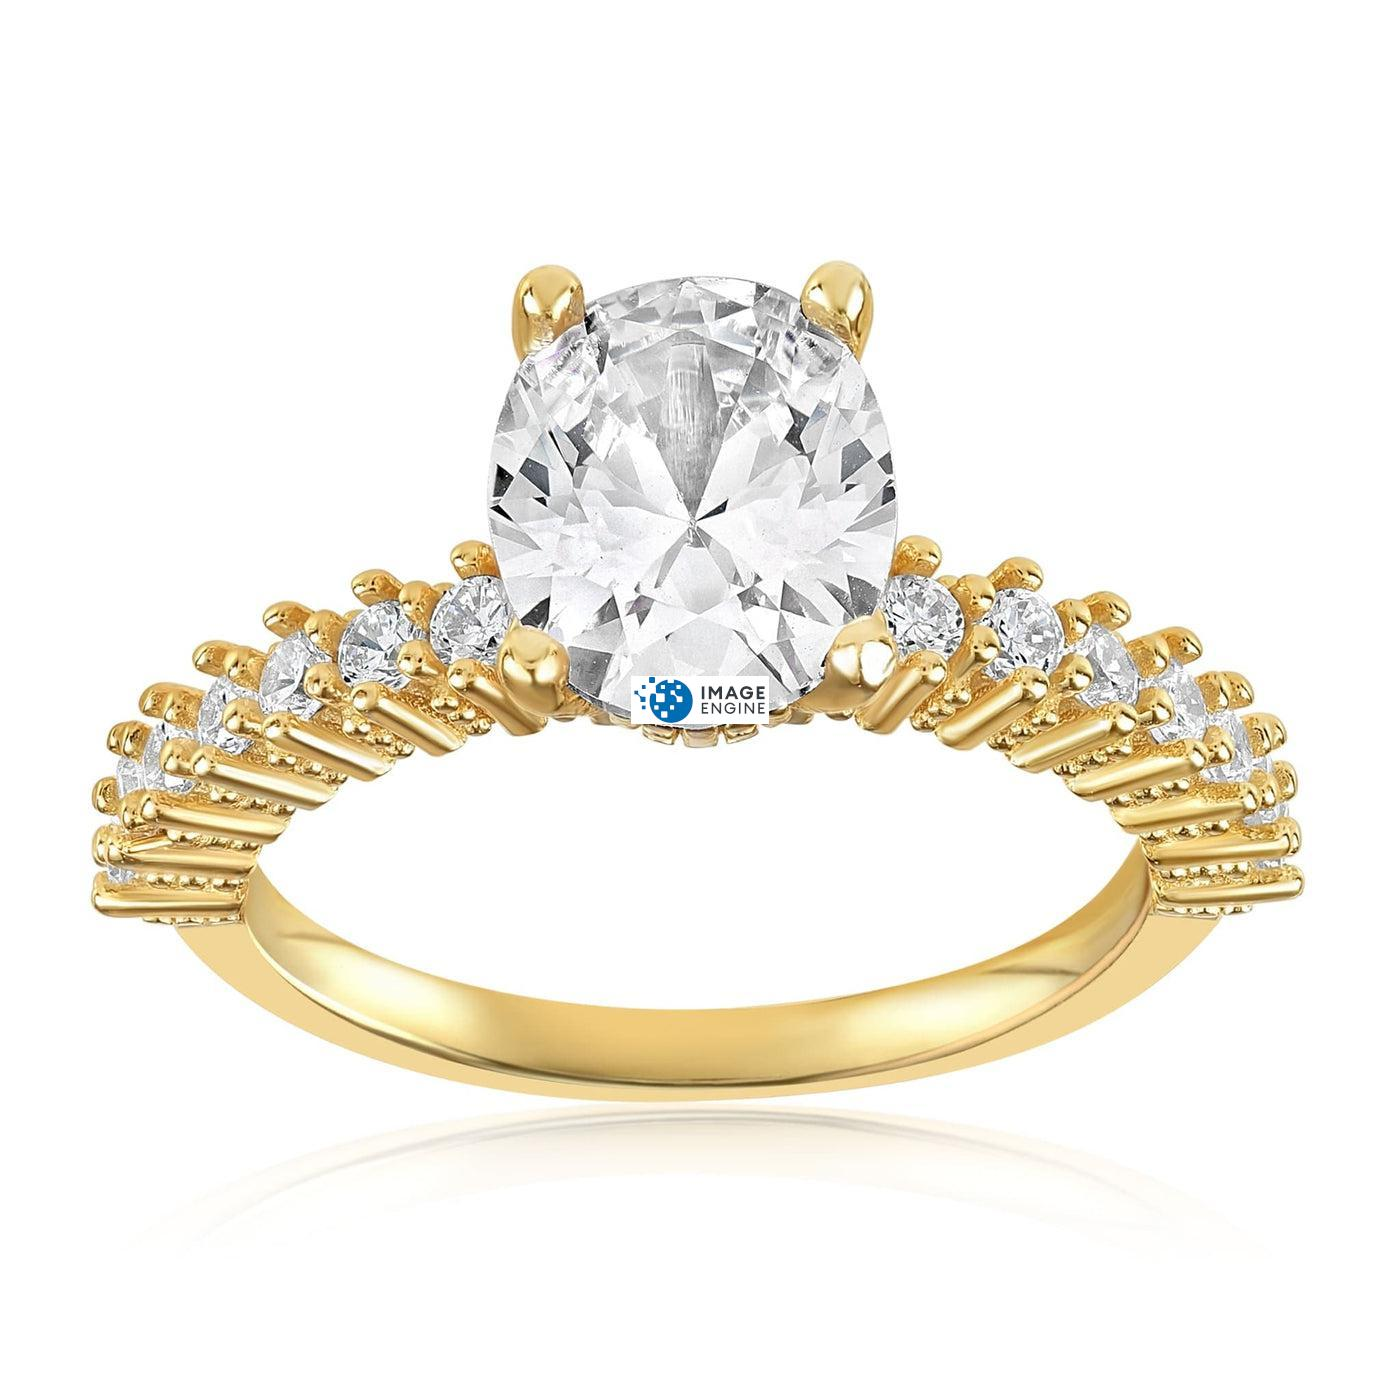 Cara Zirconia Ring - Front View Facing Up - 18K Yellow Gold Vermeil Featured